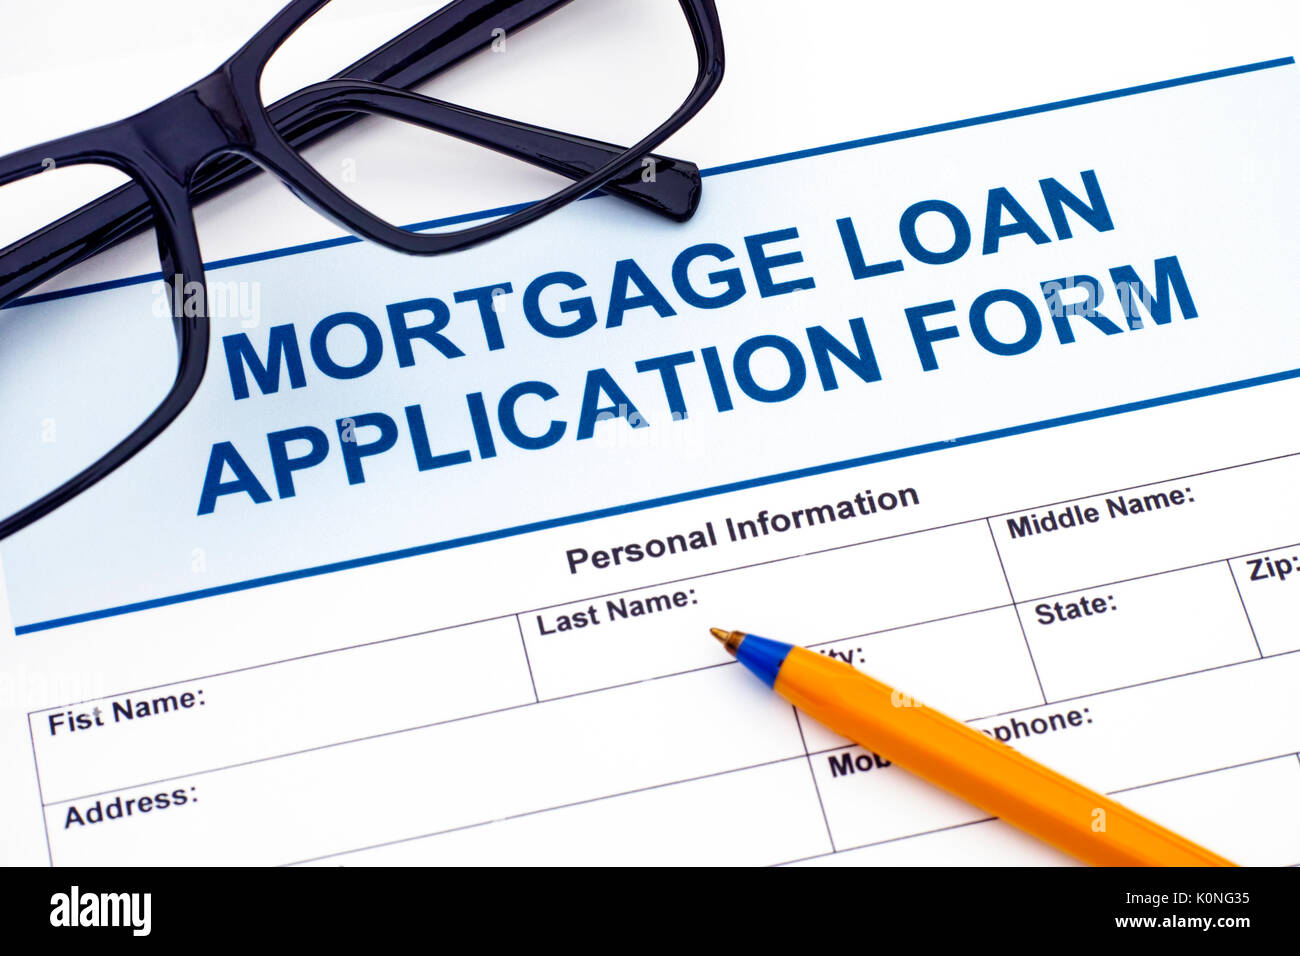 Mortgage Loan application form with ballpoint pen and glasses Stock Photo